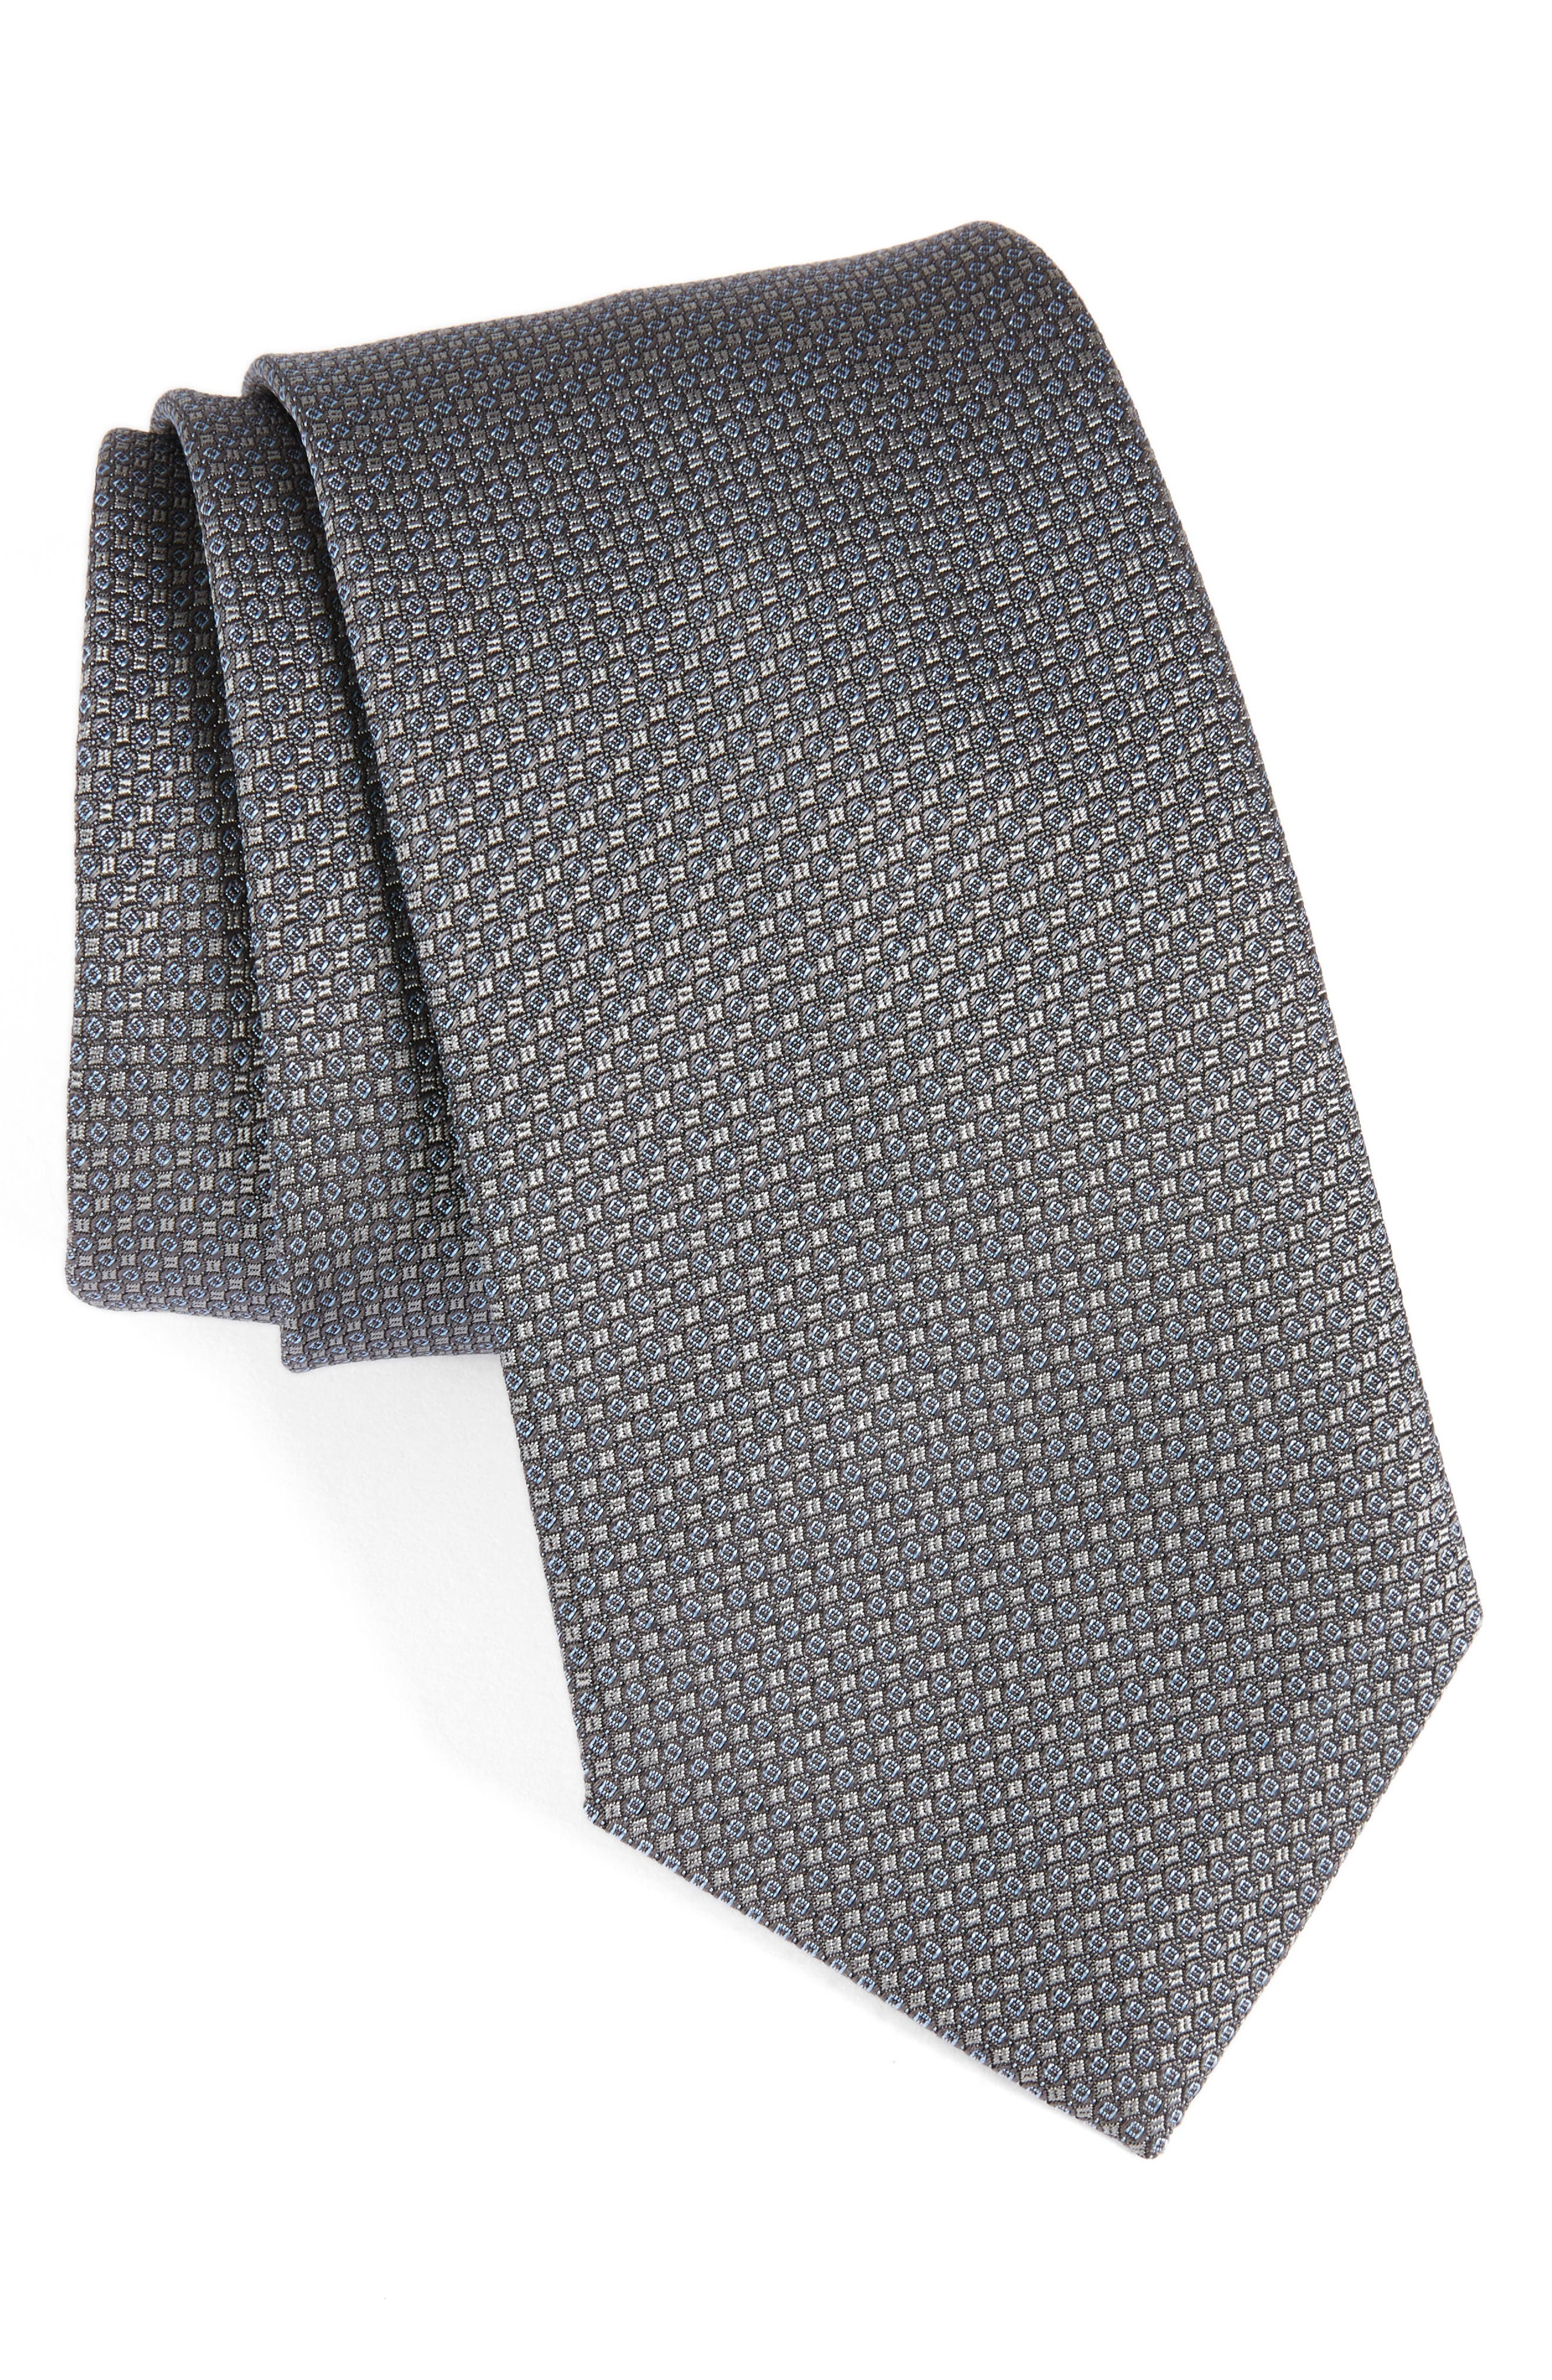 Solid Silk Tie,                             Main thumbnail 1, color,                             020